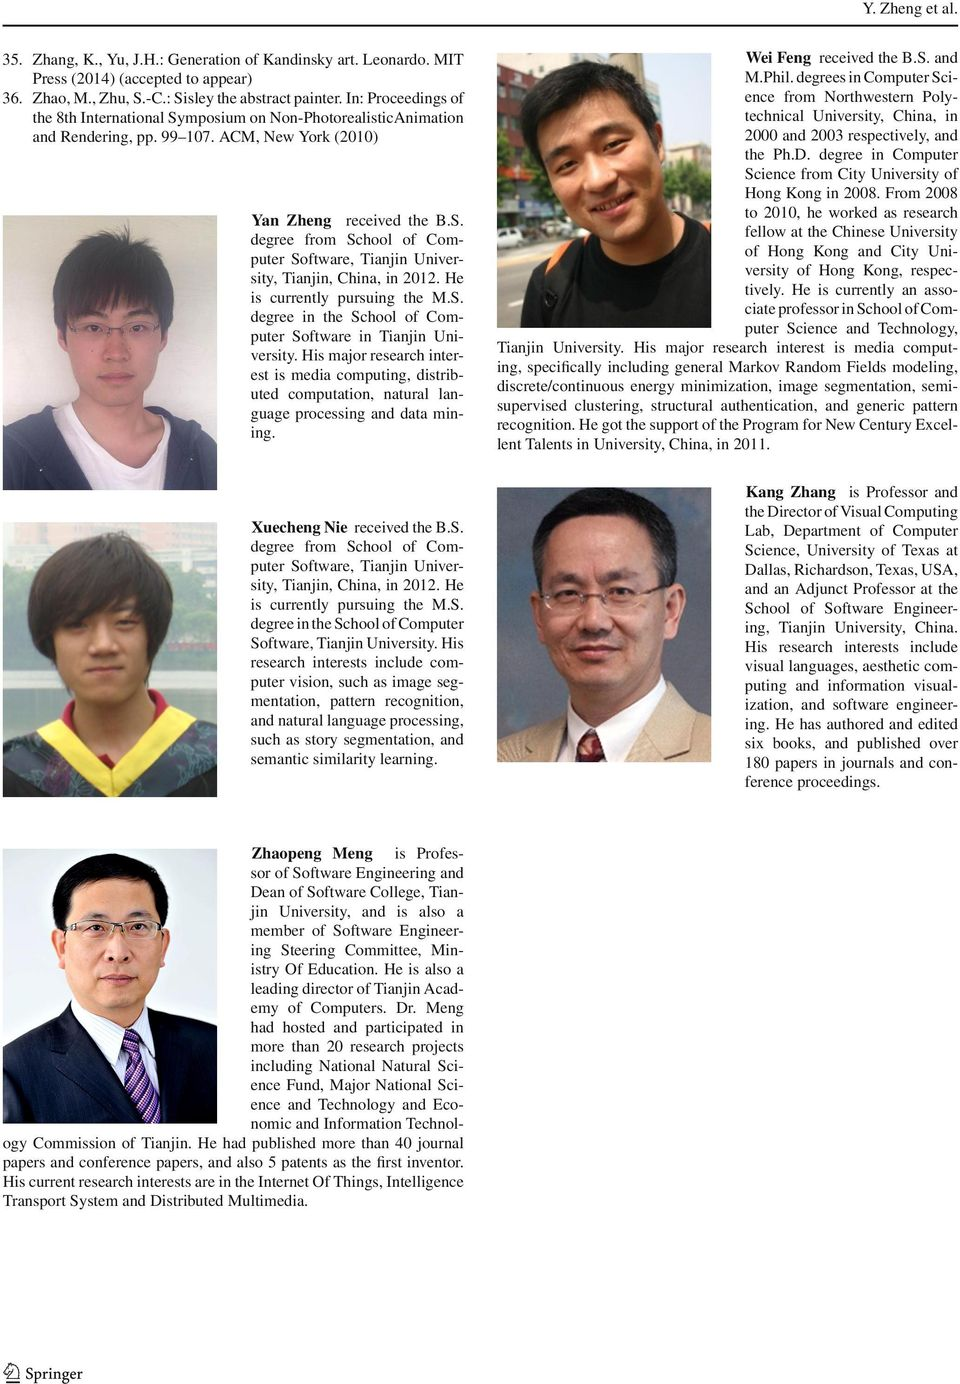 He is currently pursuing the M.S. degree in the School of Computer Software in Tianjin University.